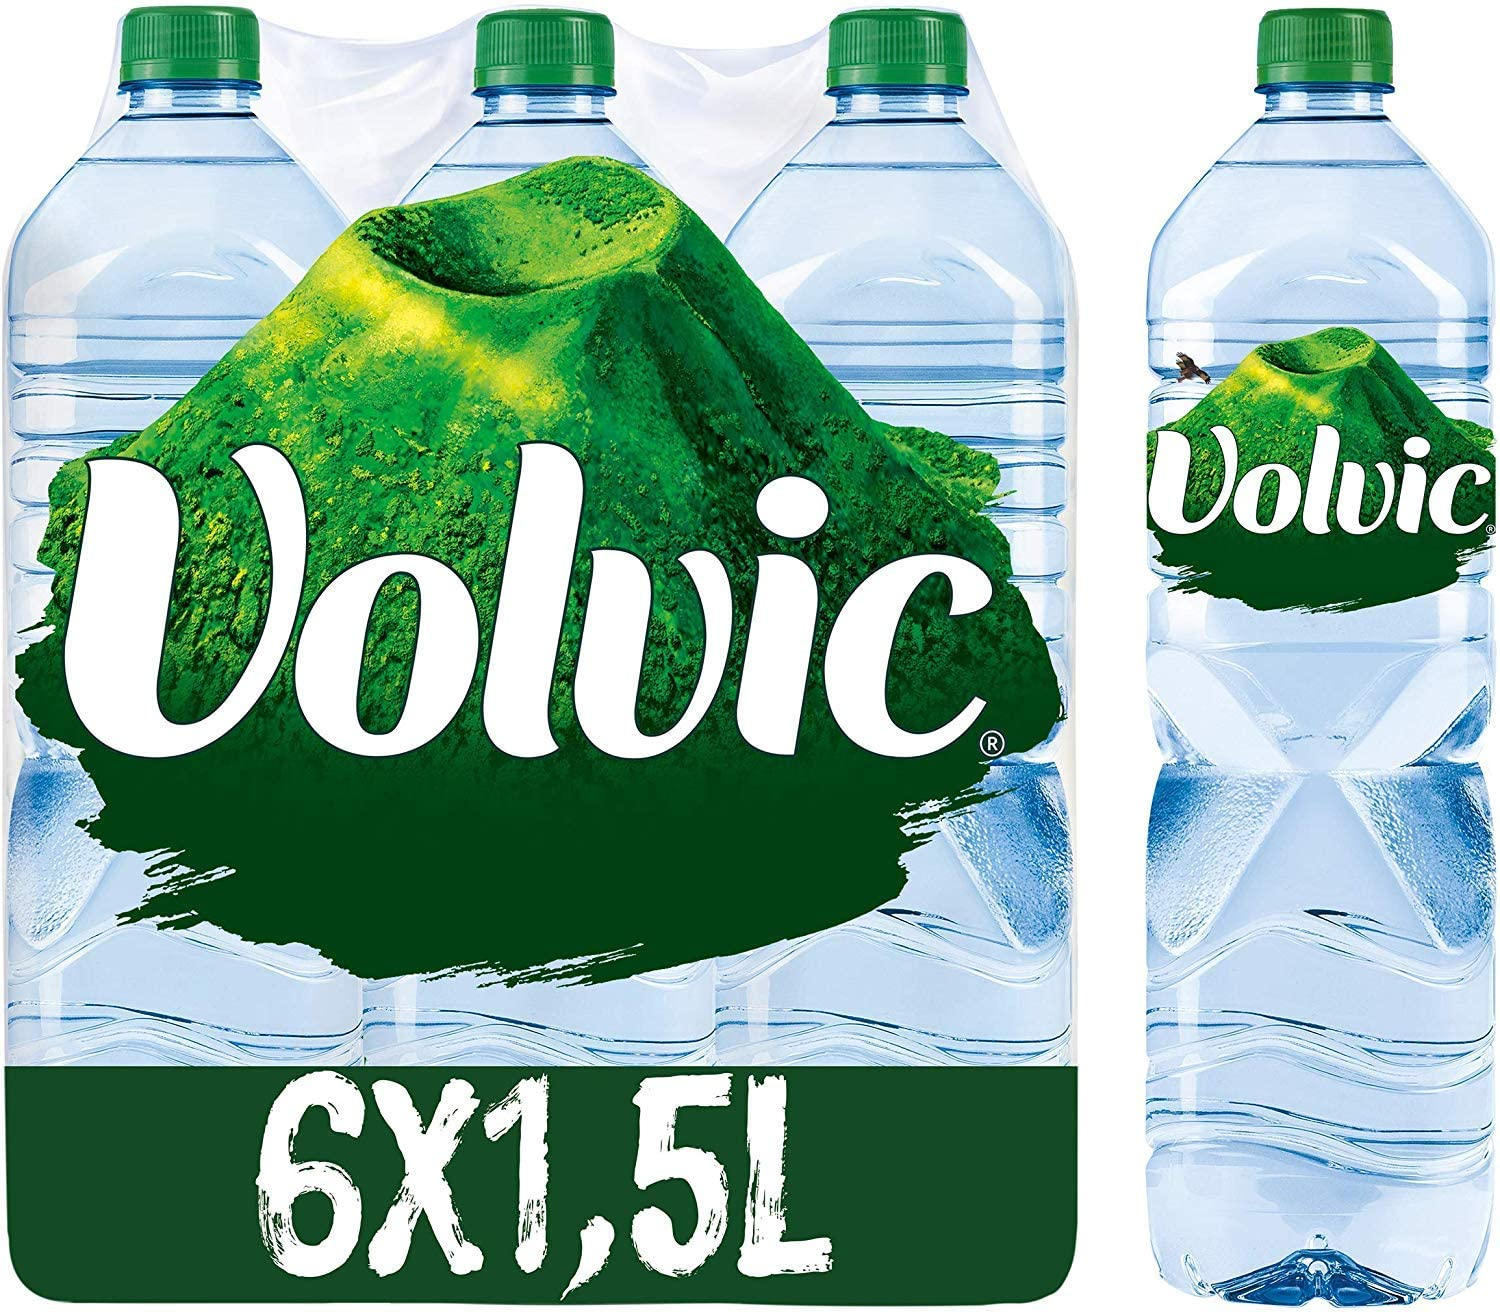 Comment contacter Volvic